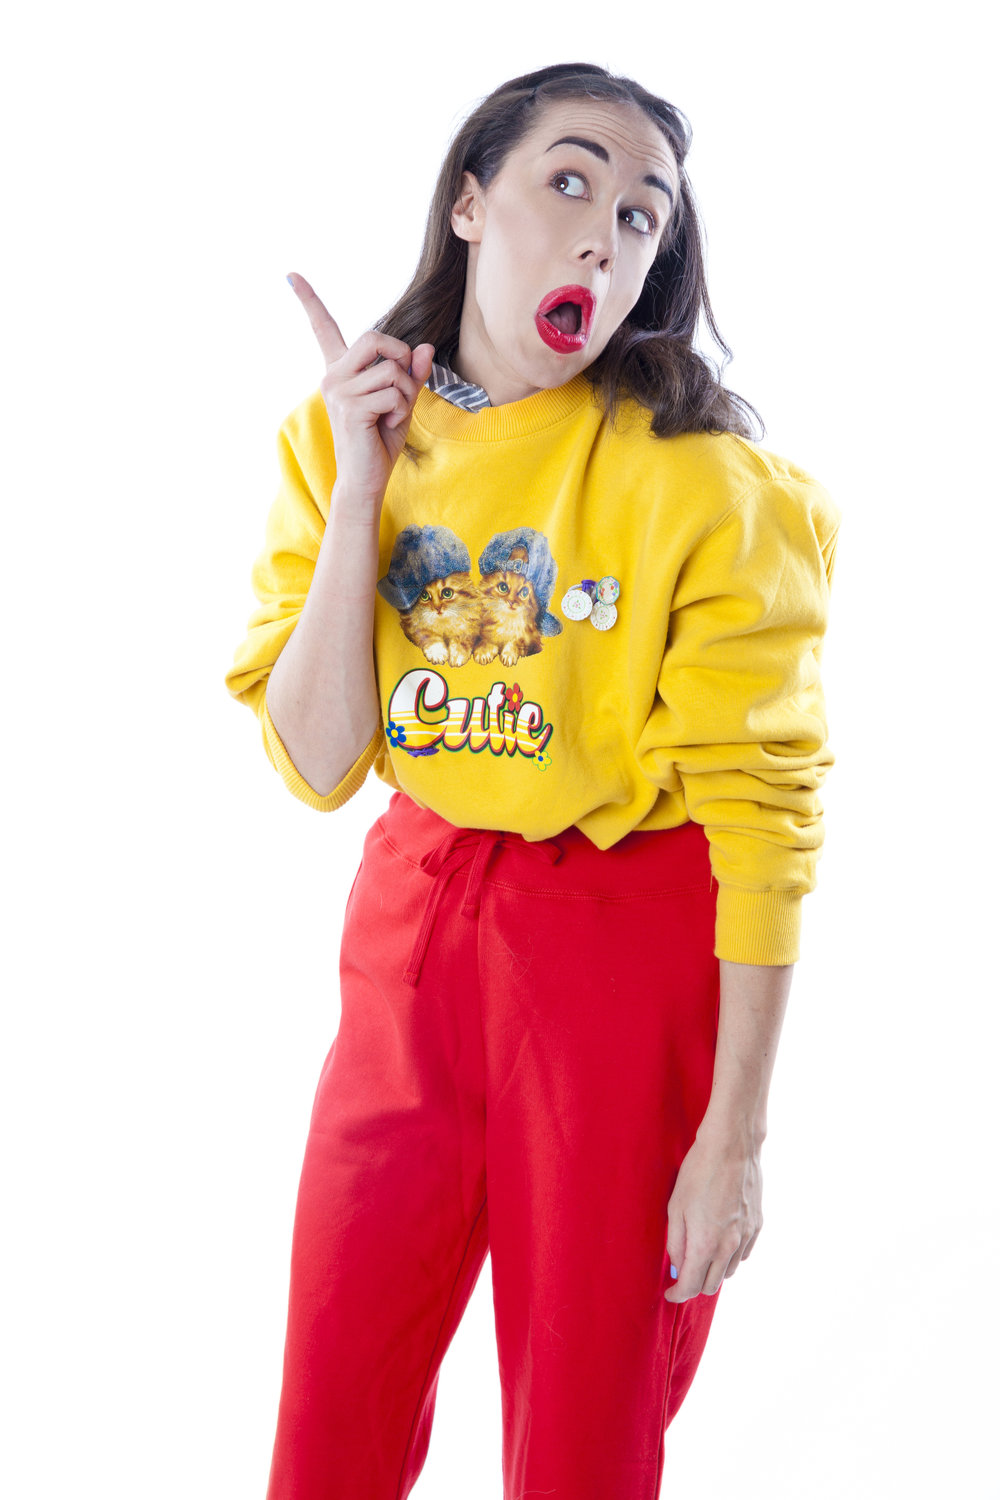 Miranda Sings 3 - USE.jpg